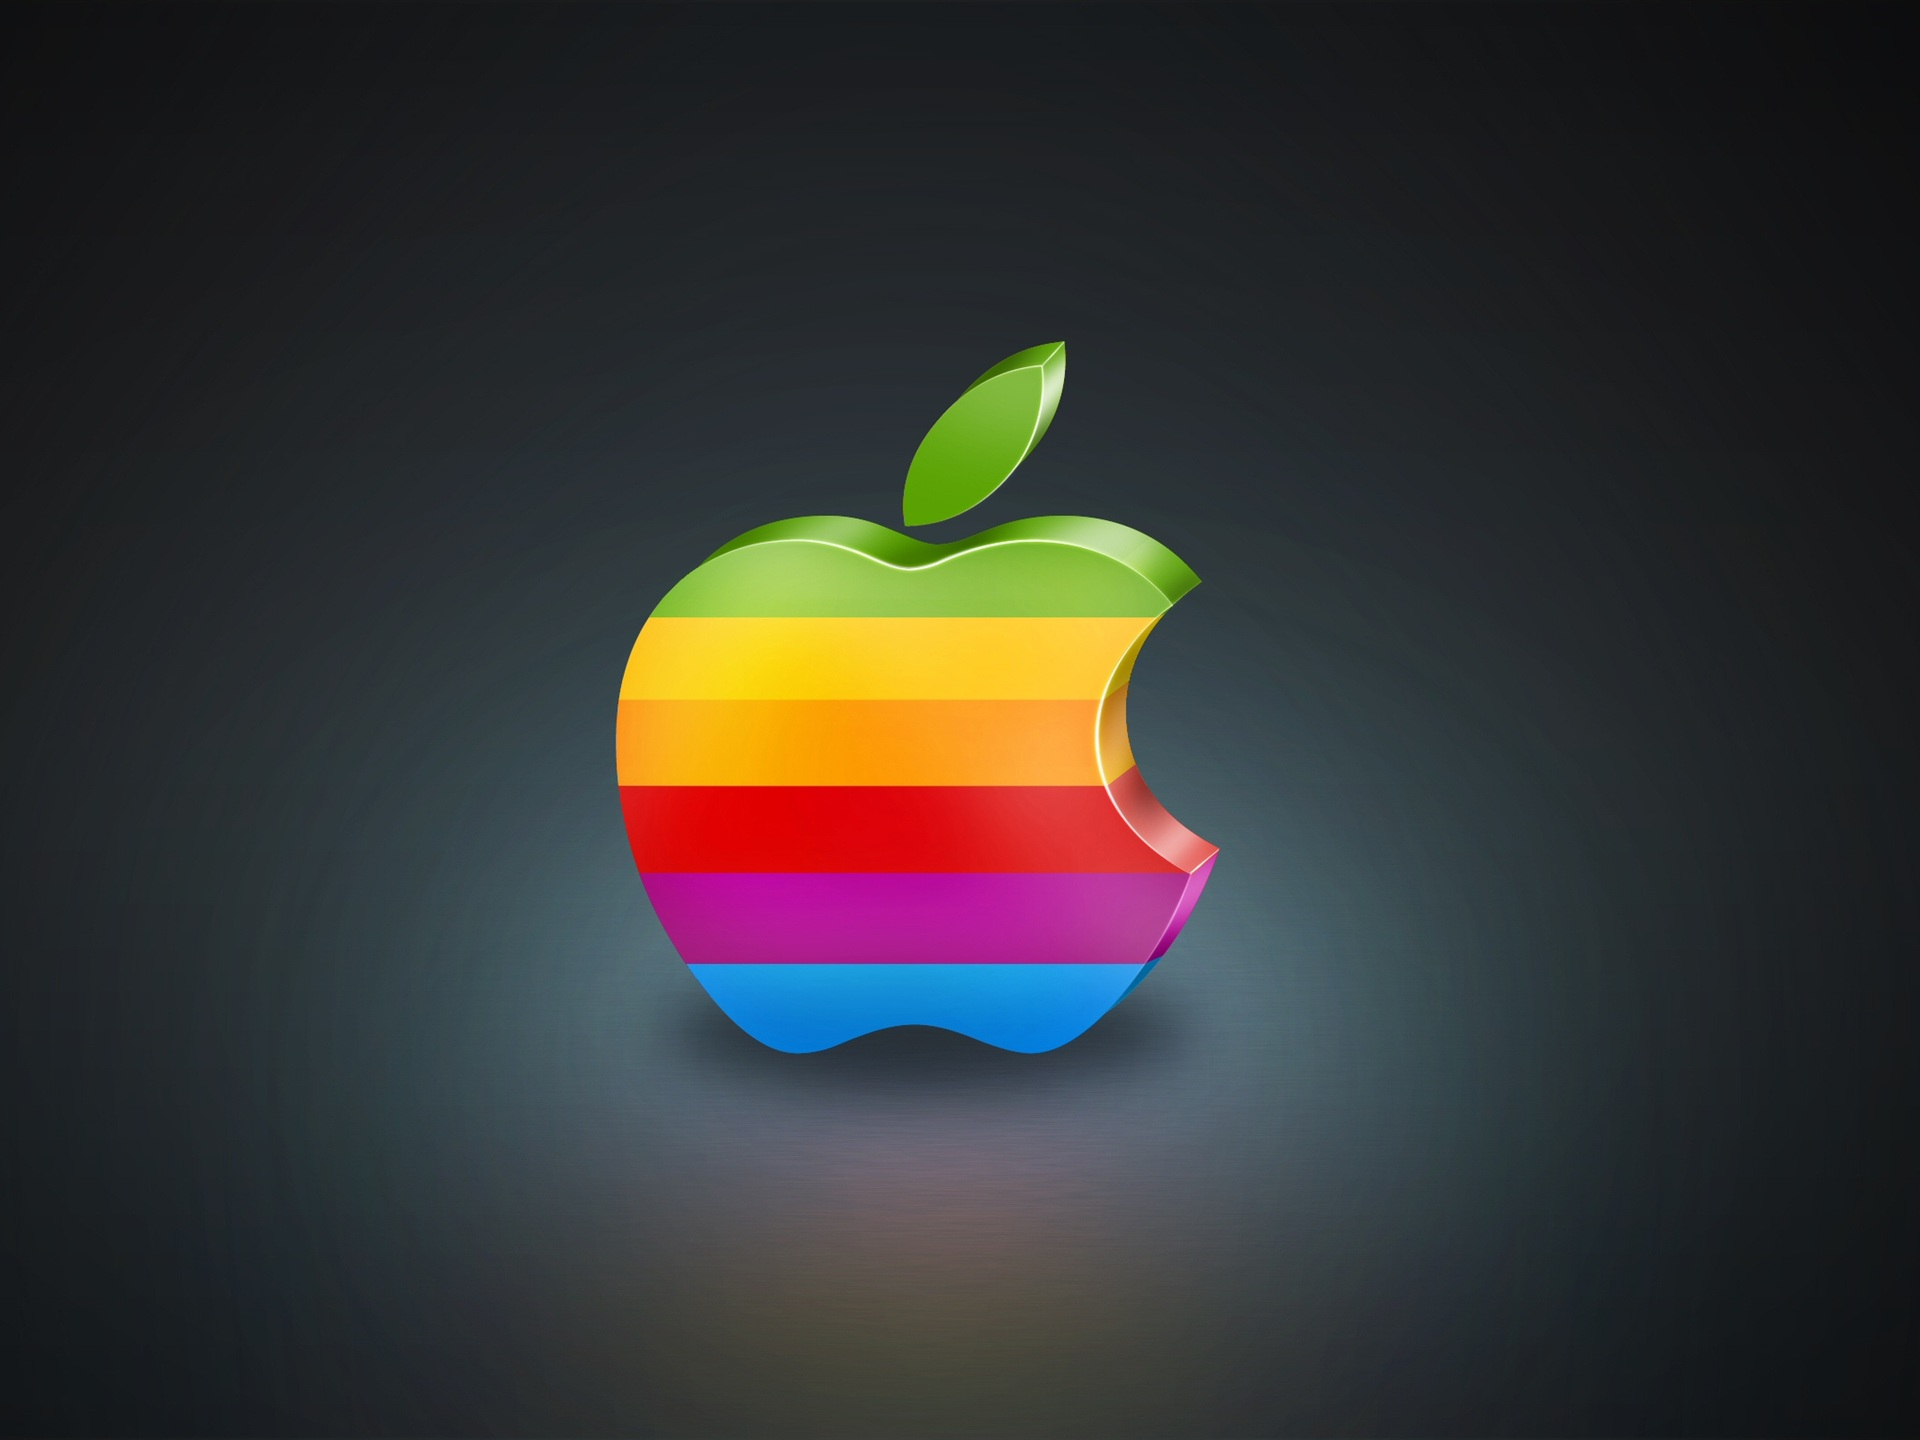 best photo apps for iphone 3d bunte apple 2560x1600 hd hintergrundbilder hd bild 16681